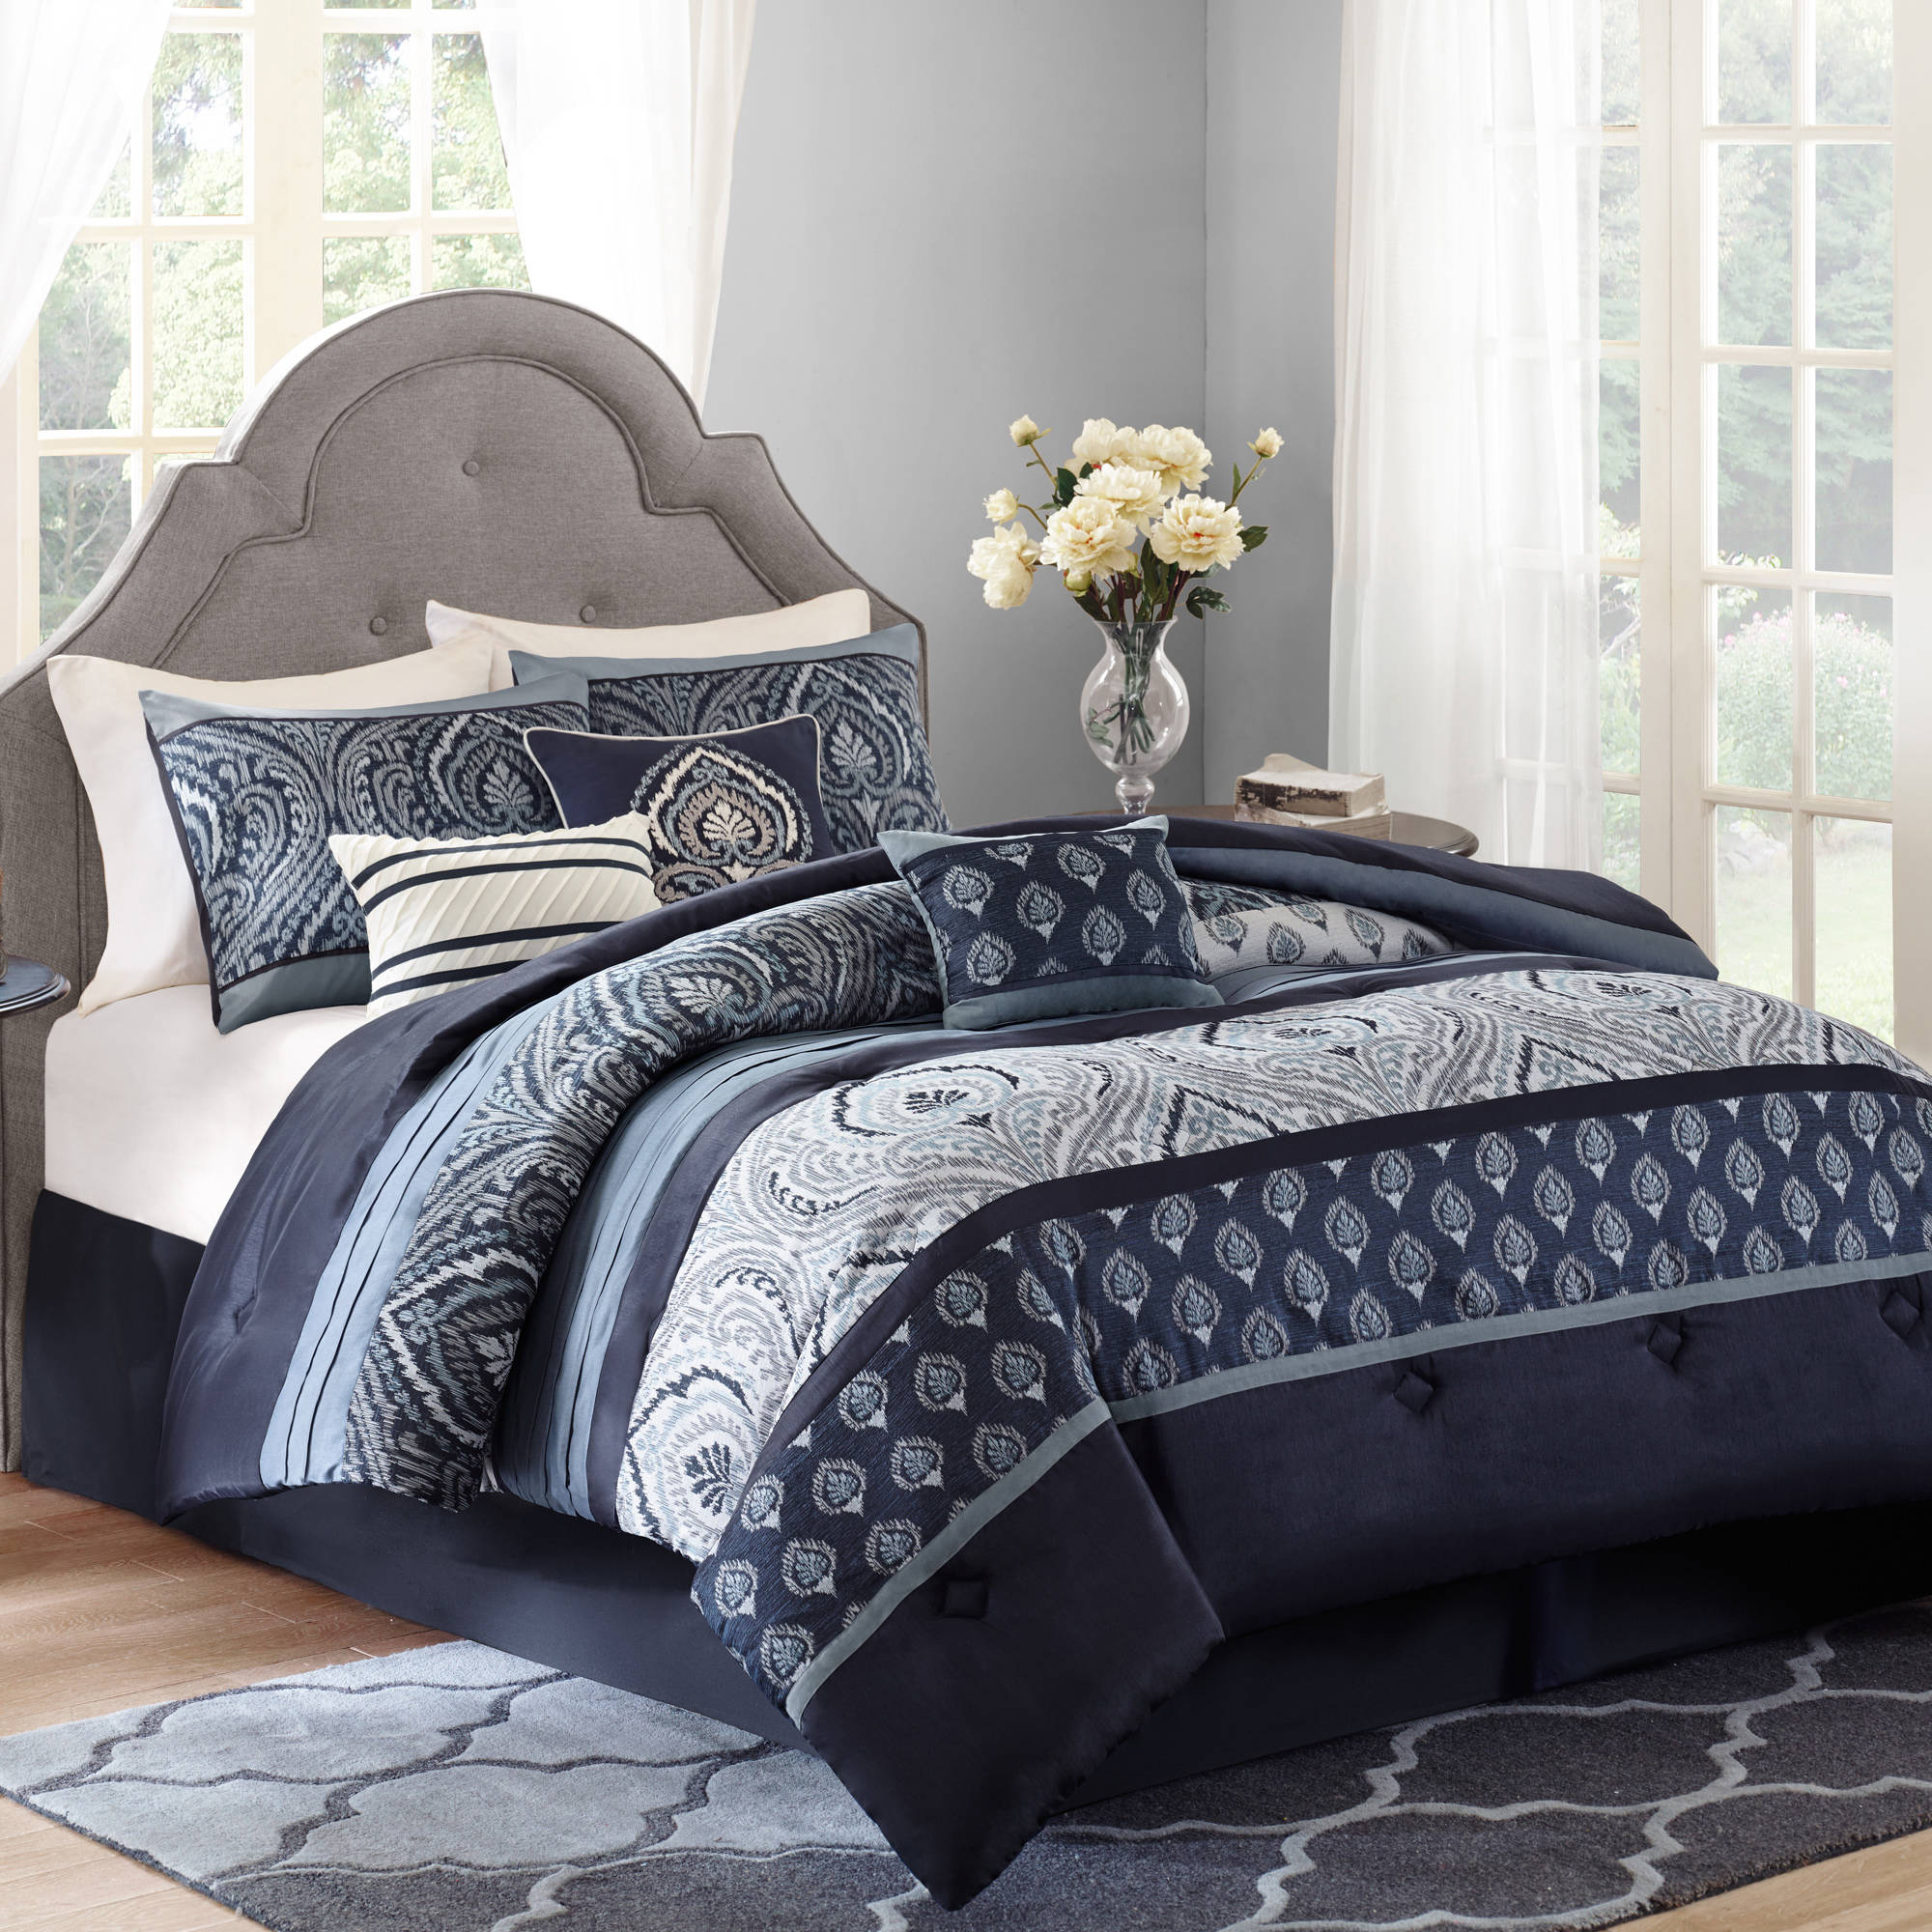 Twin Comforter Target | Twin Bed Comforters | Navy Blue Comforter